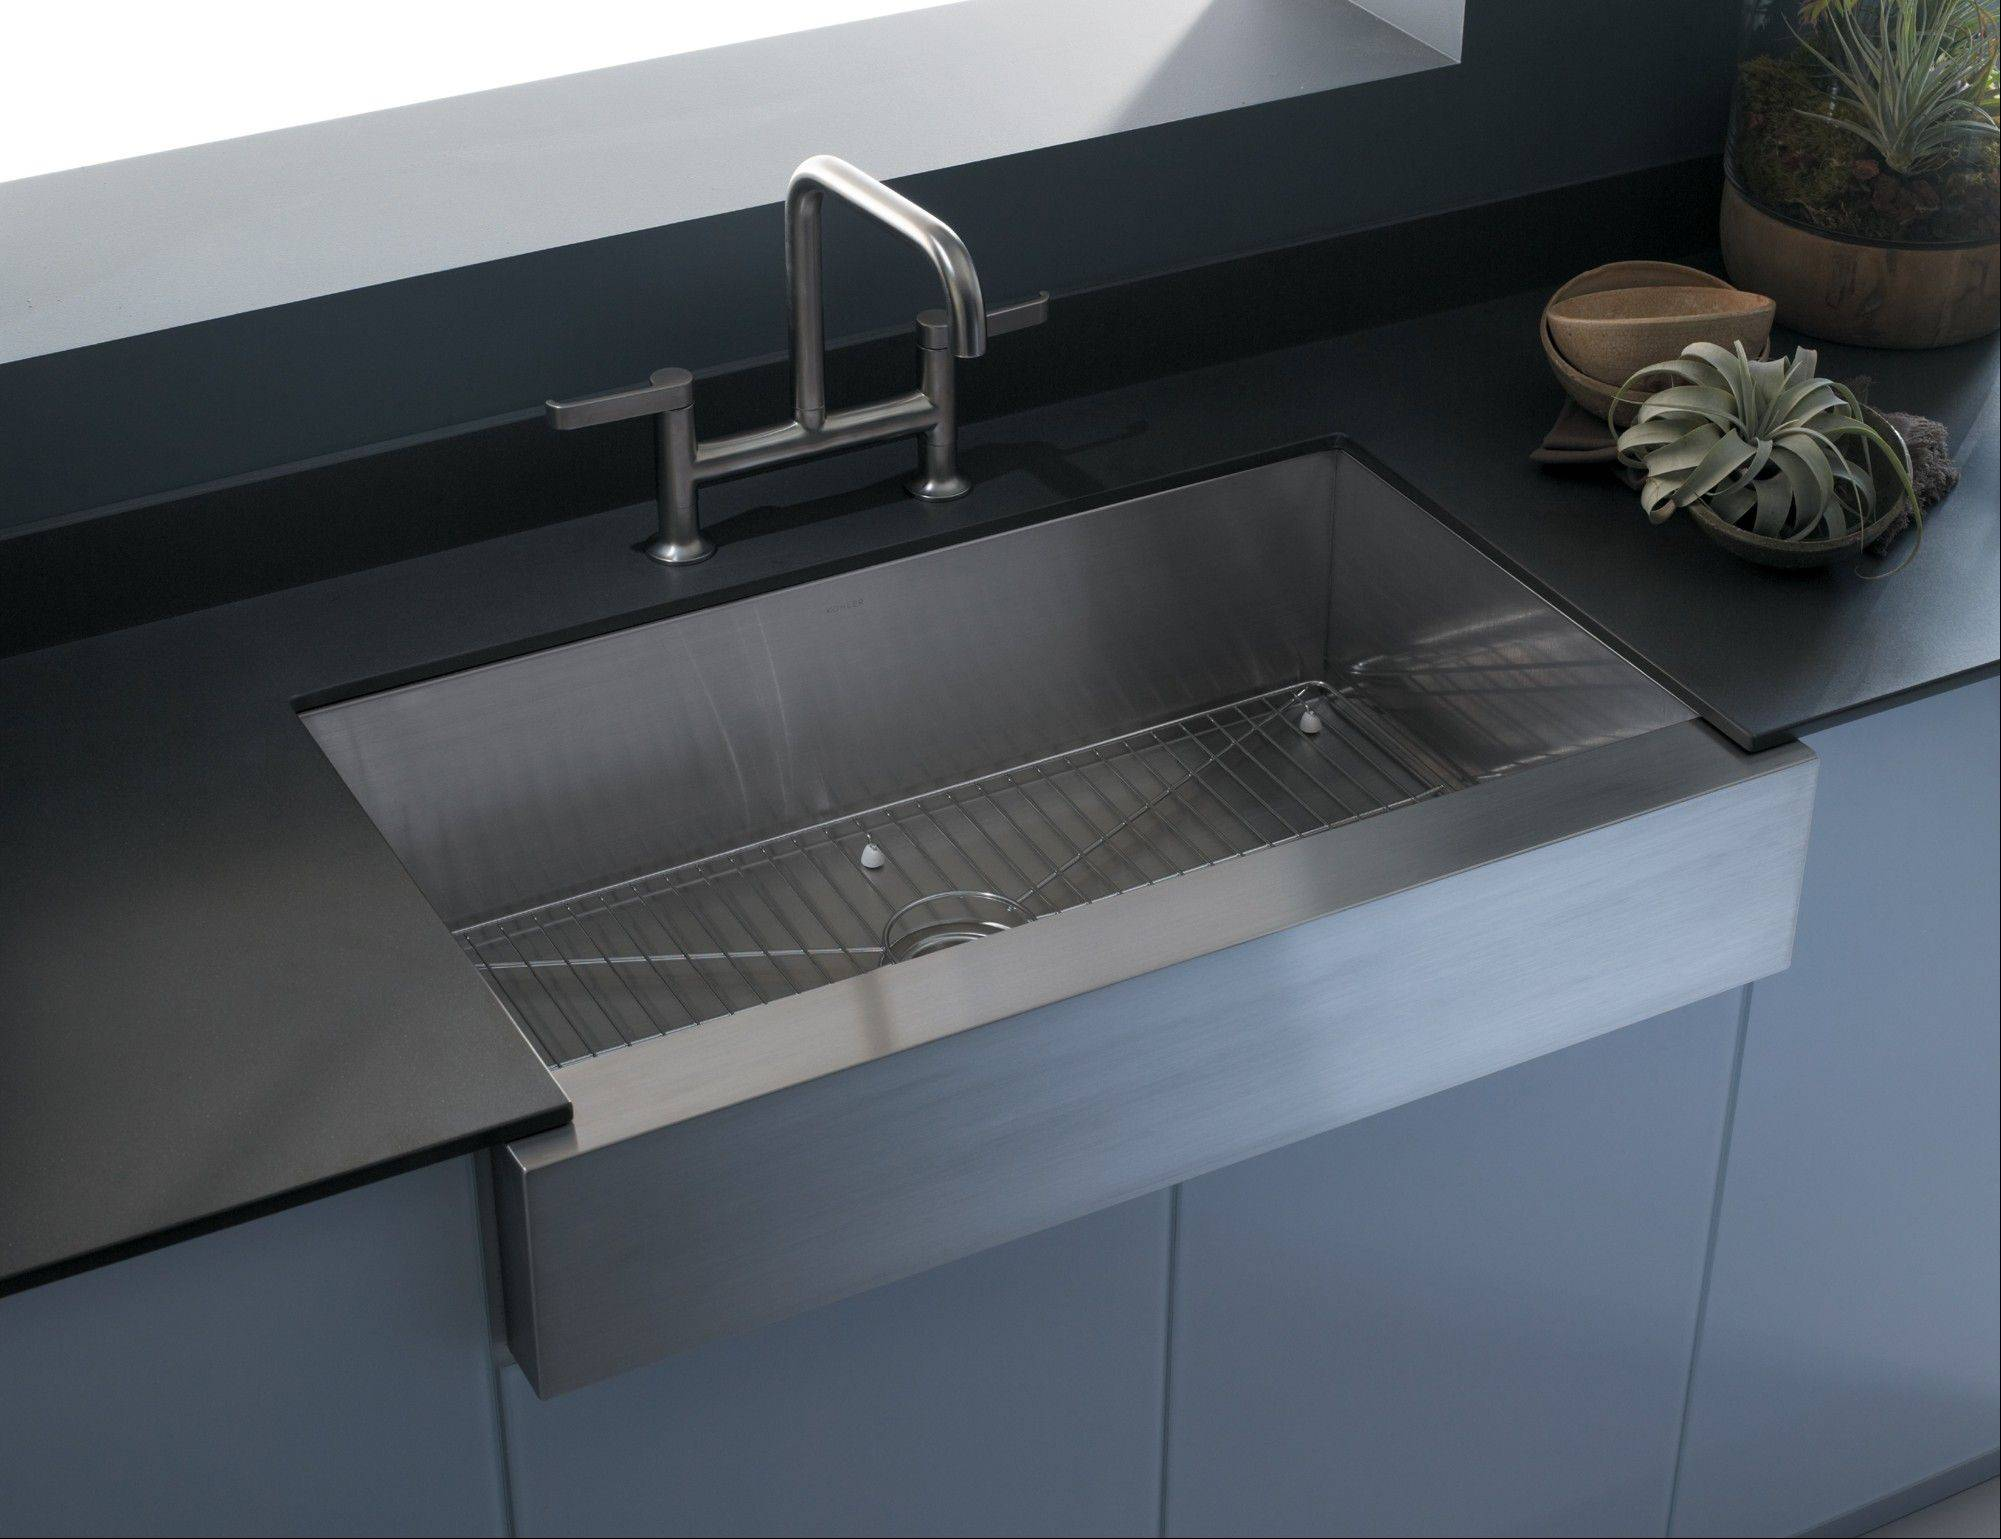 """Under mount"" sinks are usually locked in under the counter, so in most cases the countertop would be removed along with the sink."